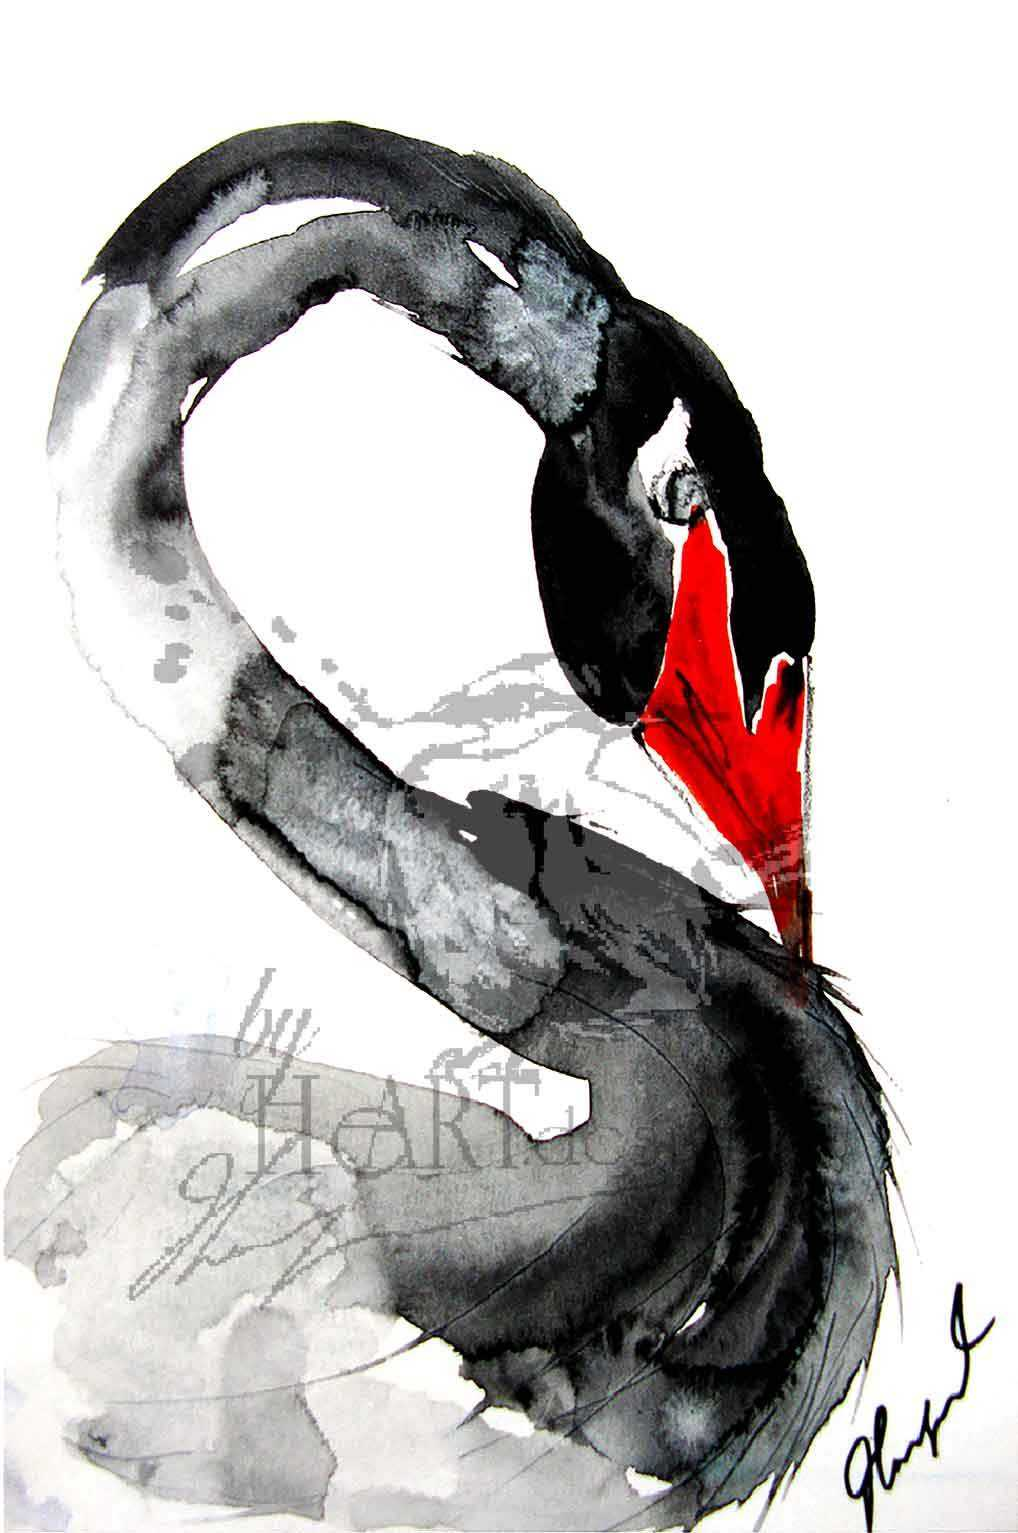 ART BIRDS, THE BLACK SWAN IS PROUD